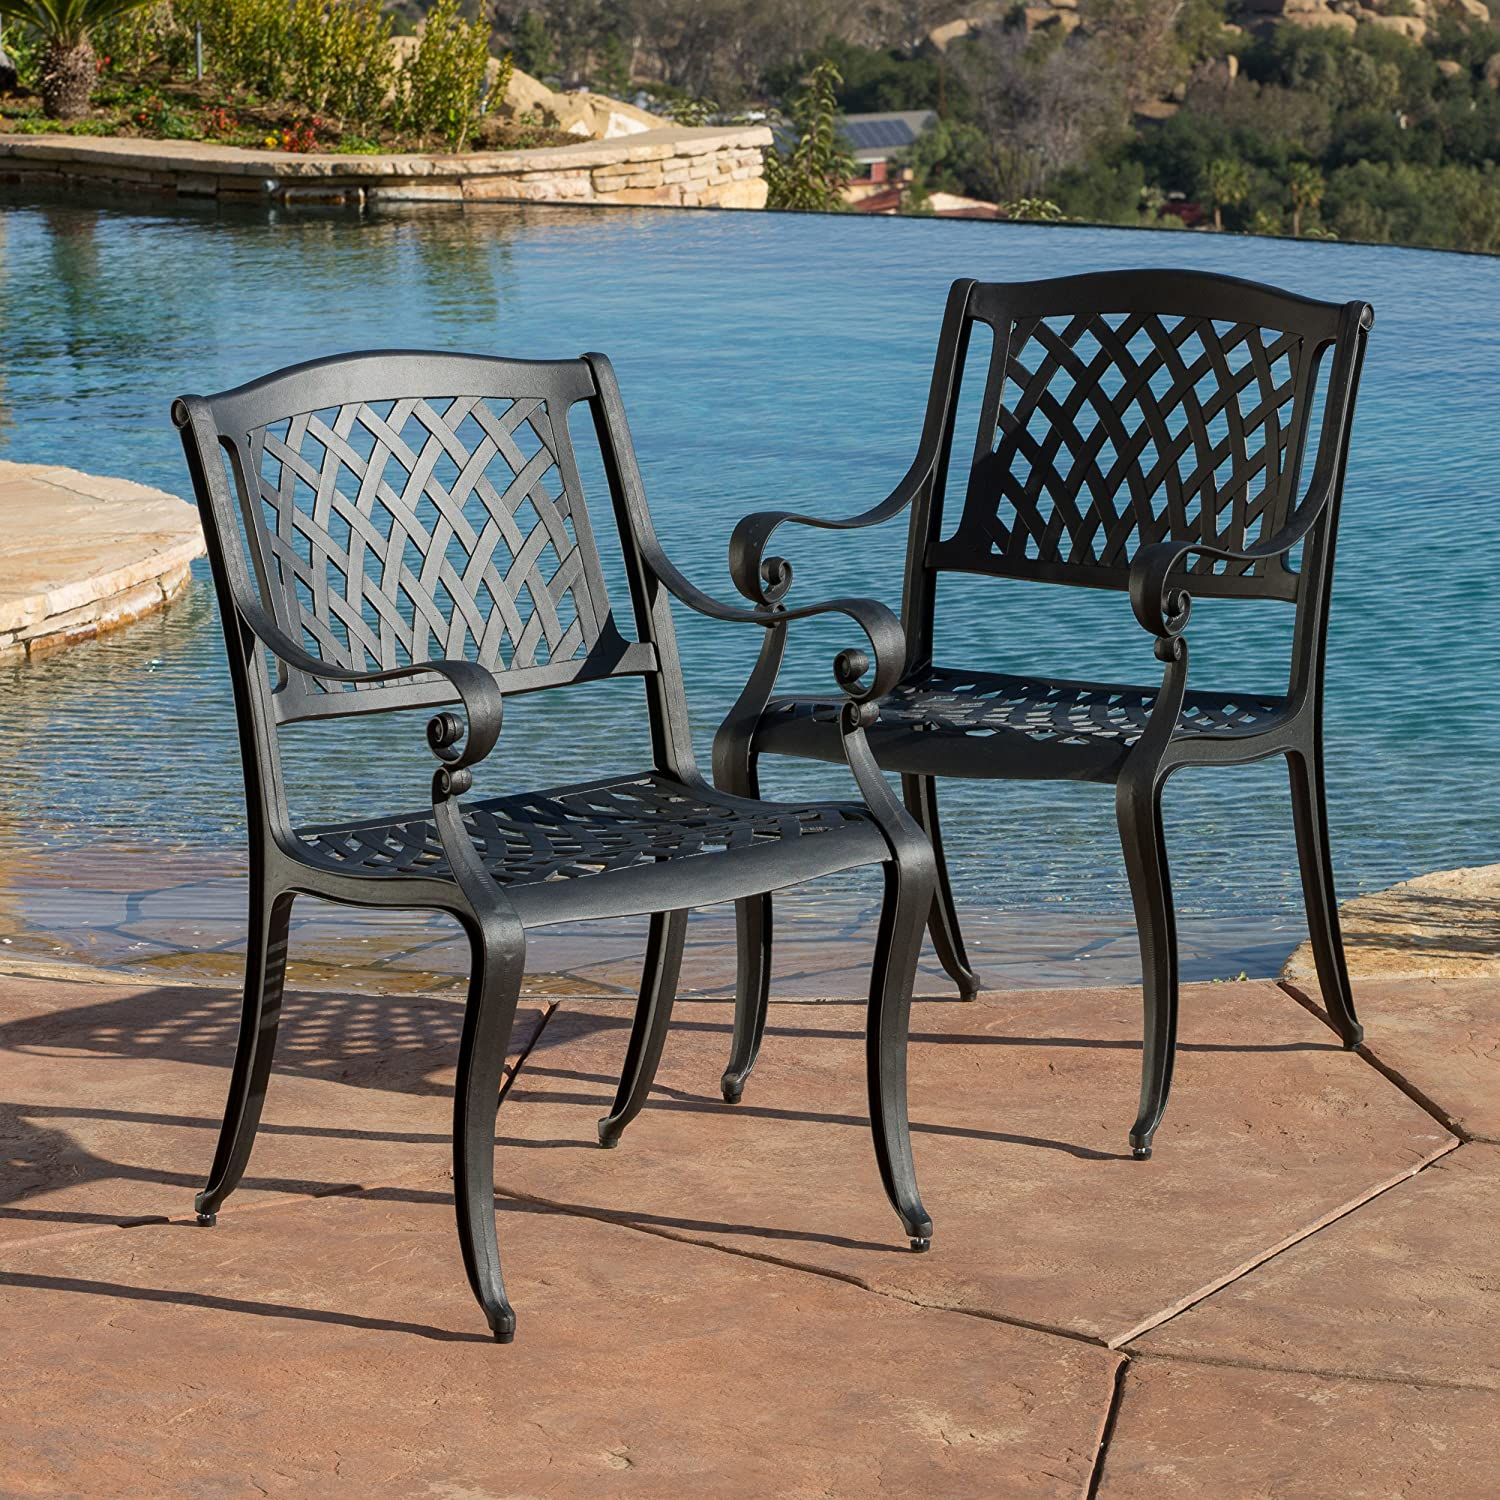 Amazon Marietta Outdoor Cast Aluminum Dining Chairs Set of 2